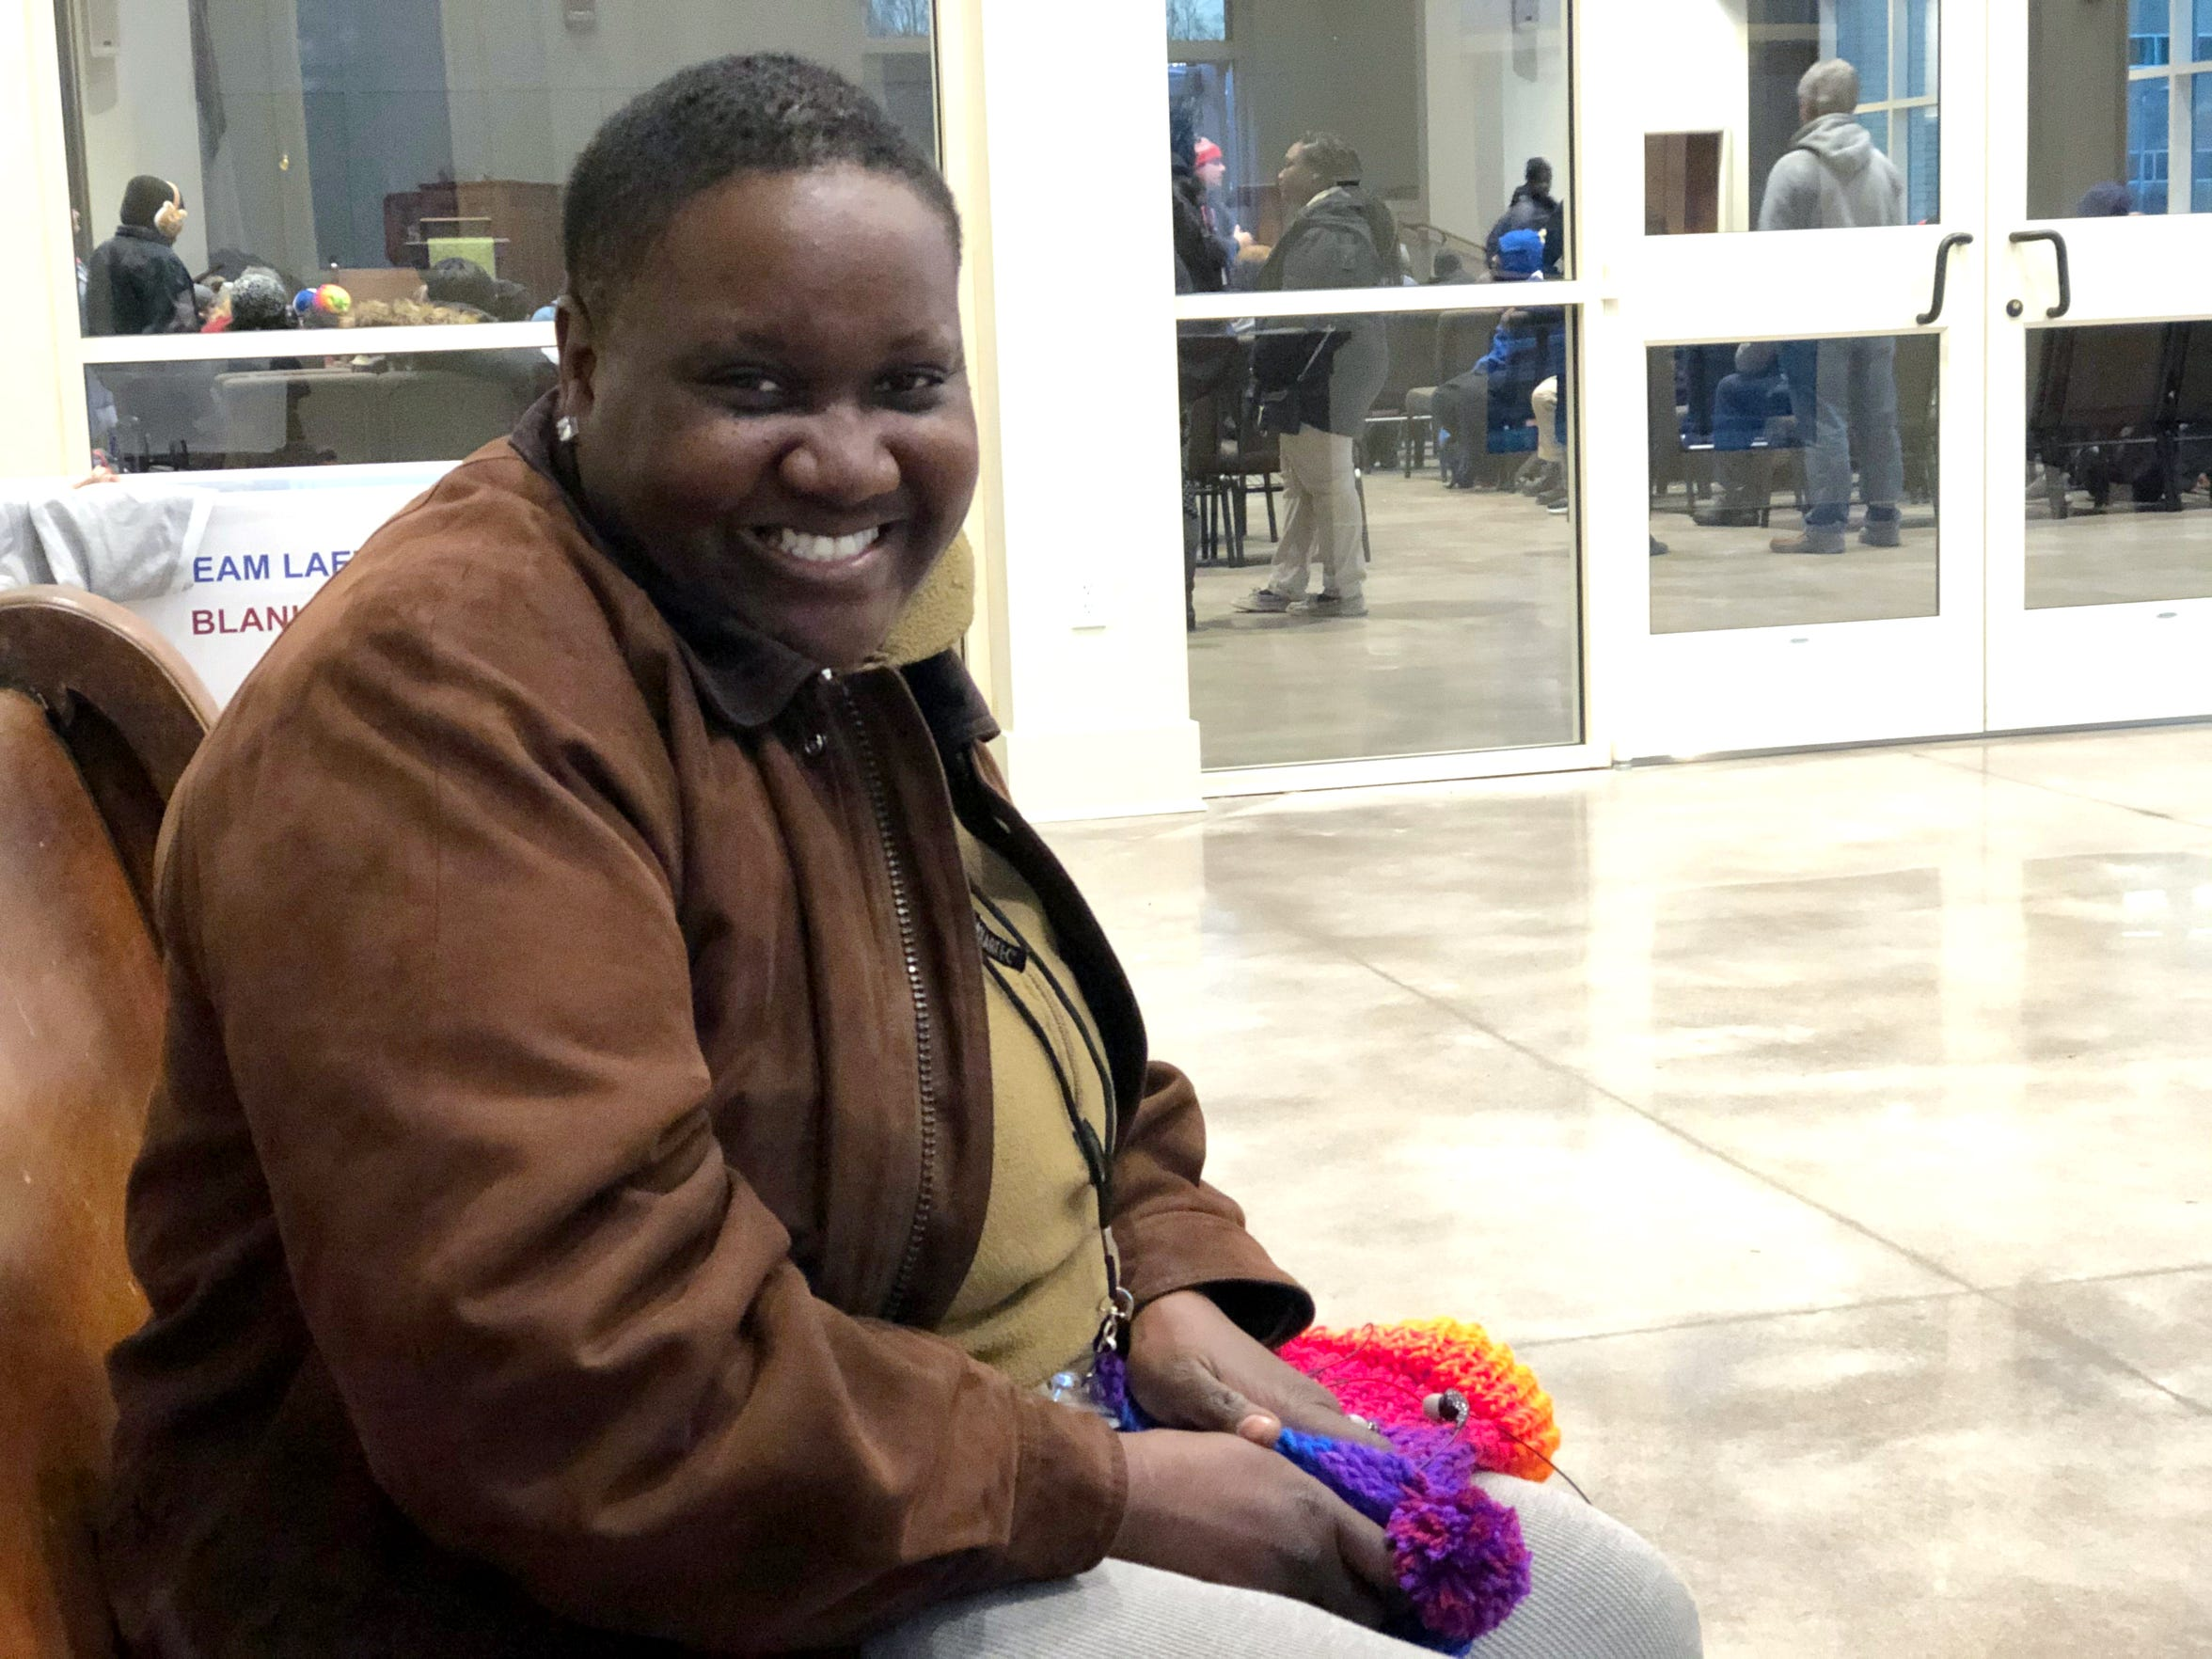 "Caresa Williams, 33, said her experience with homelessness began with a nervous breakdown after the father of her three children died. ""I was like, I don't know what I'm gonna do. I have three kids. What am I supposed to do? I was used to my kids' father being that breadwinner,"" she said on Jan. 21, 2020, while waiting for her placement through Room in the Inn. Williams said she's currently in the process of being rehoused."